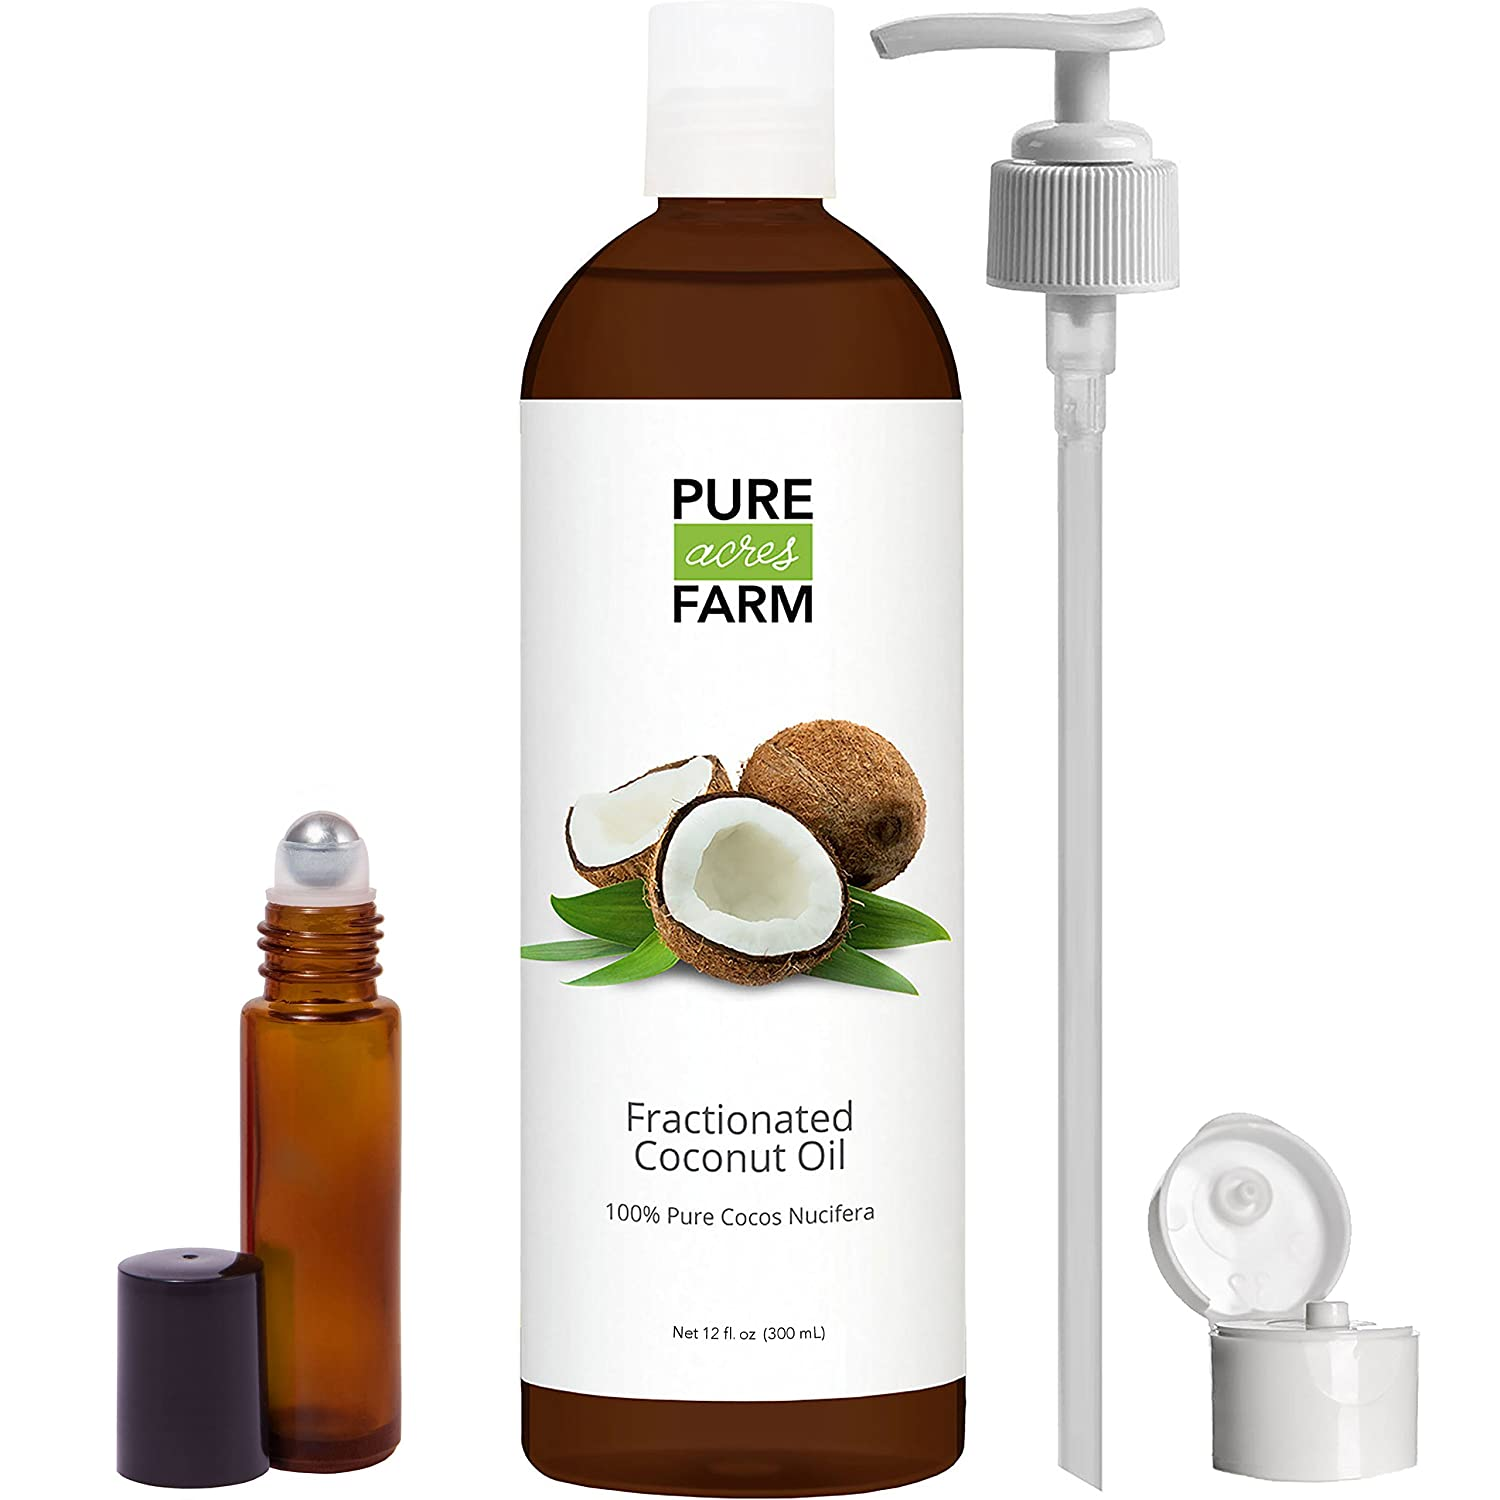 Fractionated Coconut Oil (Liquid) - WITH PUMP + FREE Recipe eBook! - Use with Essential Oils and Aromatherapy as a Carrier and Base oil - Add to Roll-On Bottles for Easy Application (12oz) Pure Acres Farm fractionated-coconut-oil